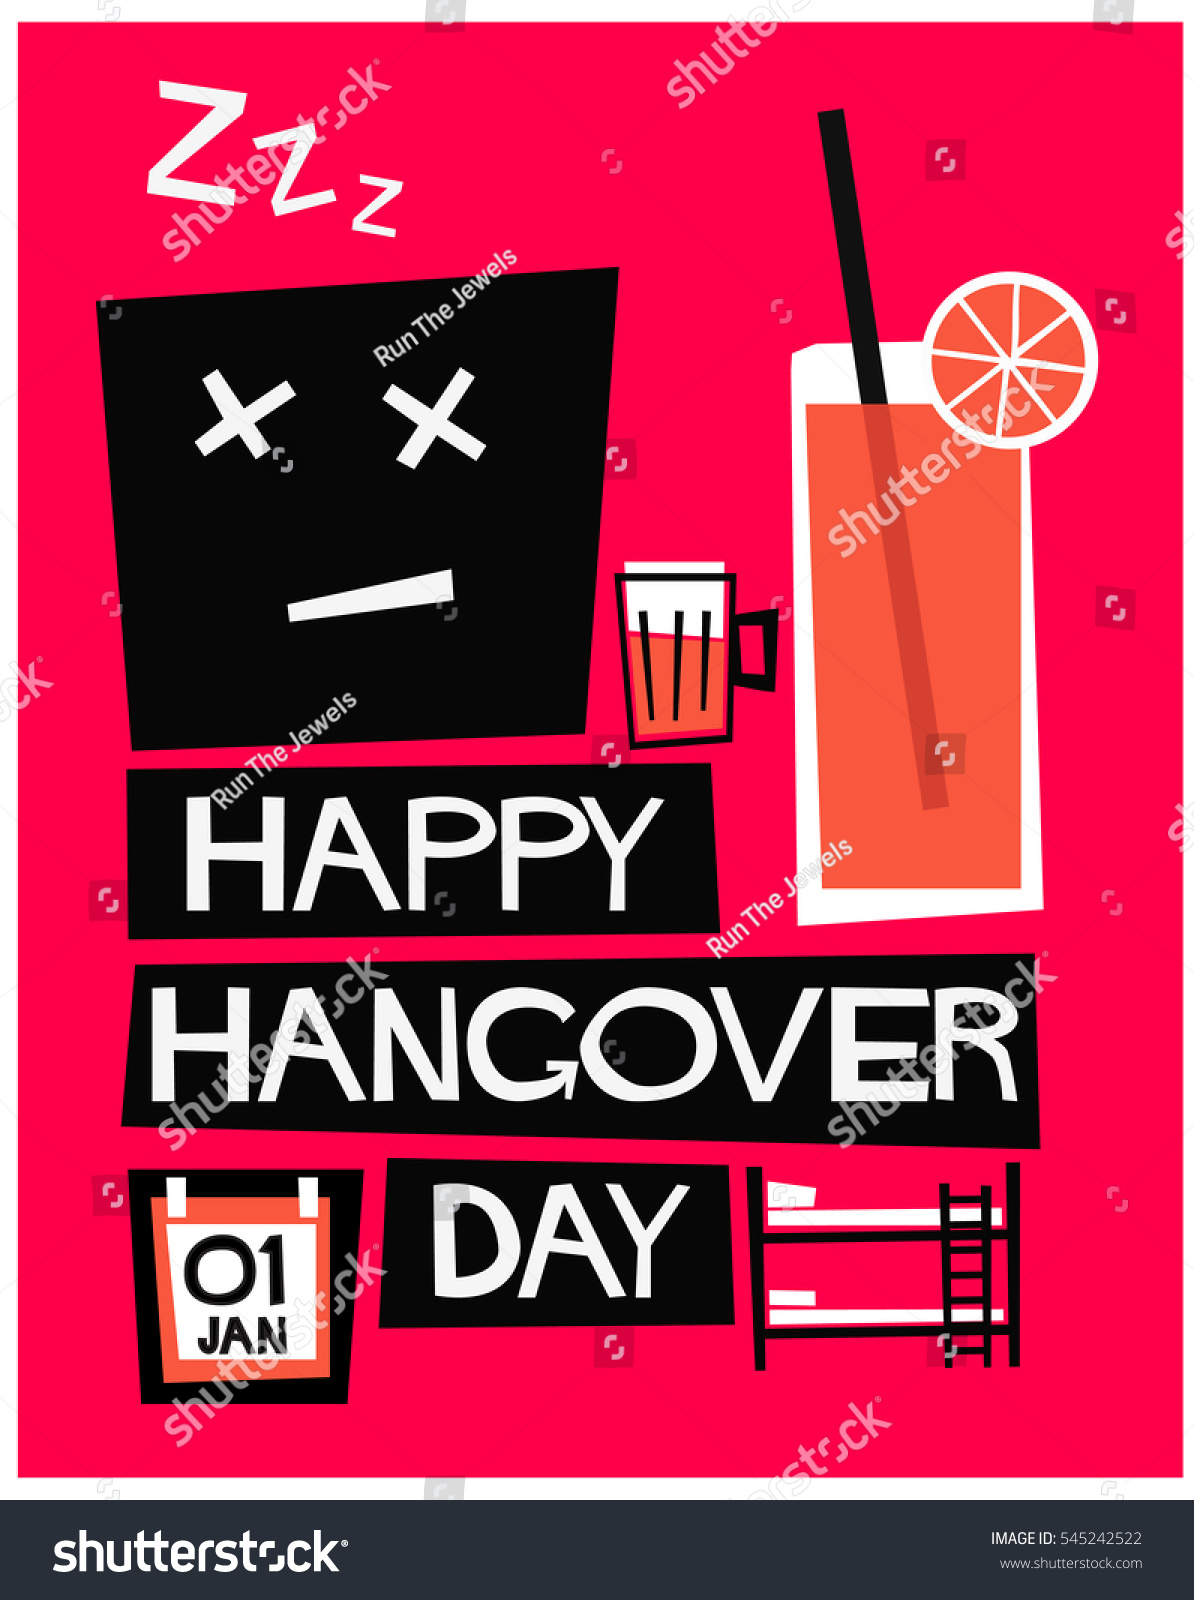 5c3277cbf0810 Happy Hangover Day 01 January (Flat Style Vector Illustration Alcohol  Poster Design)